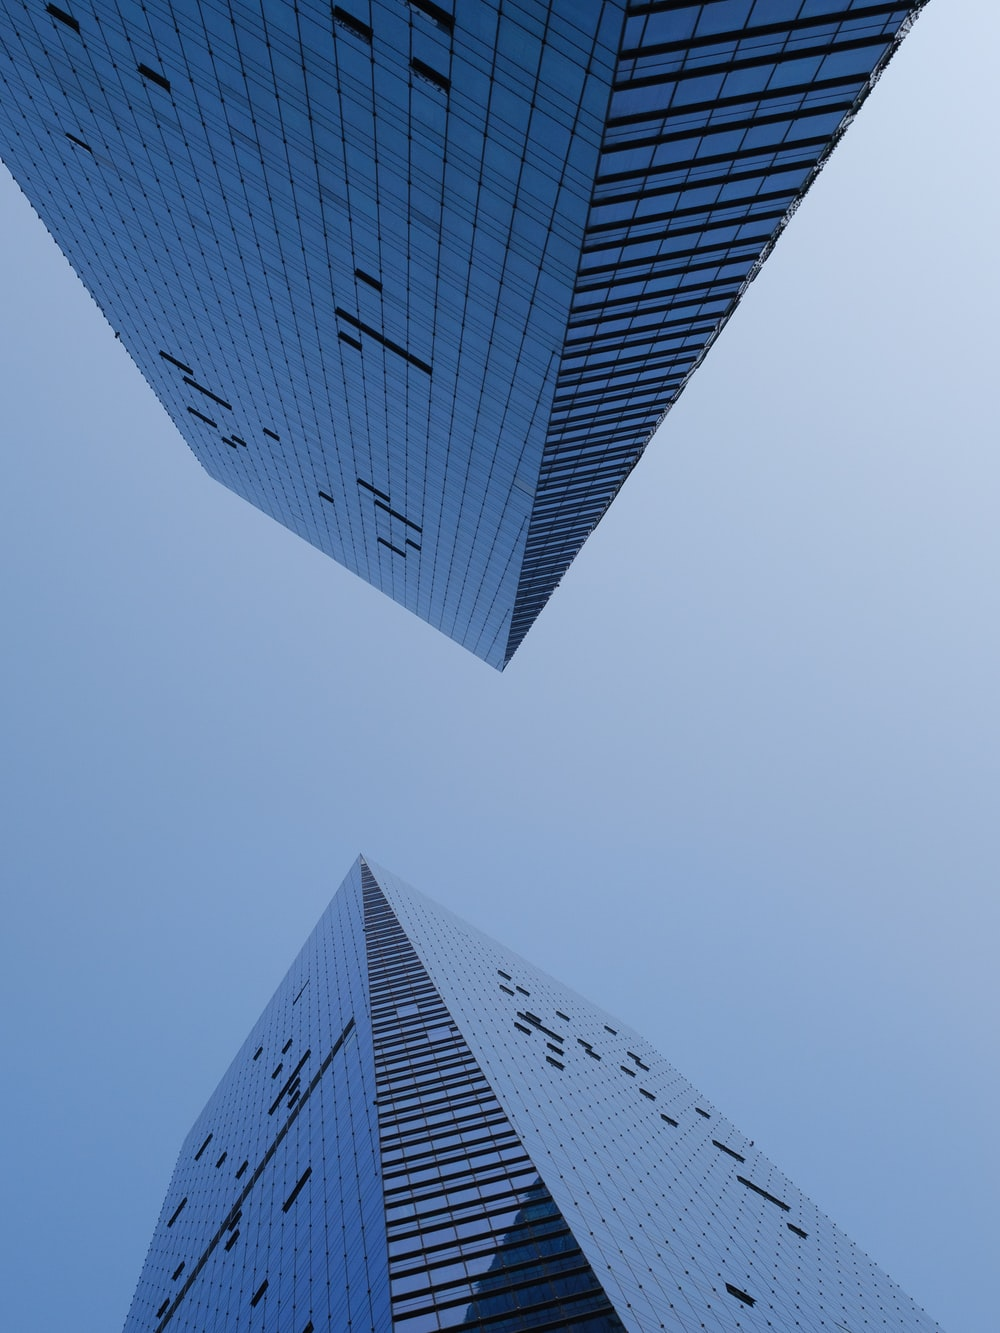 worm's eye view photography of two buildings